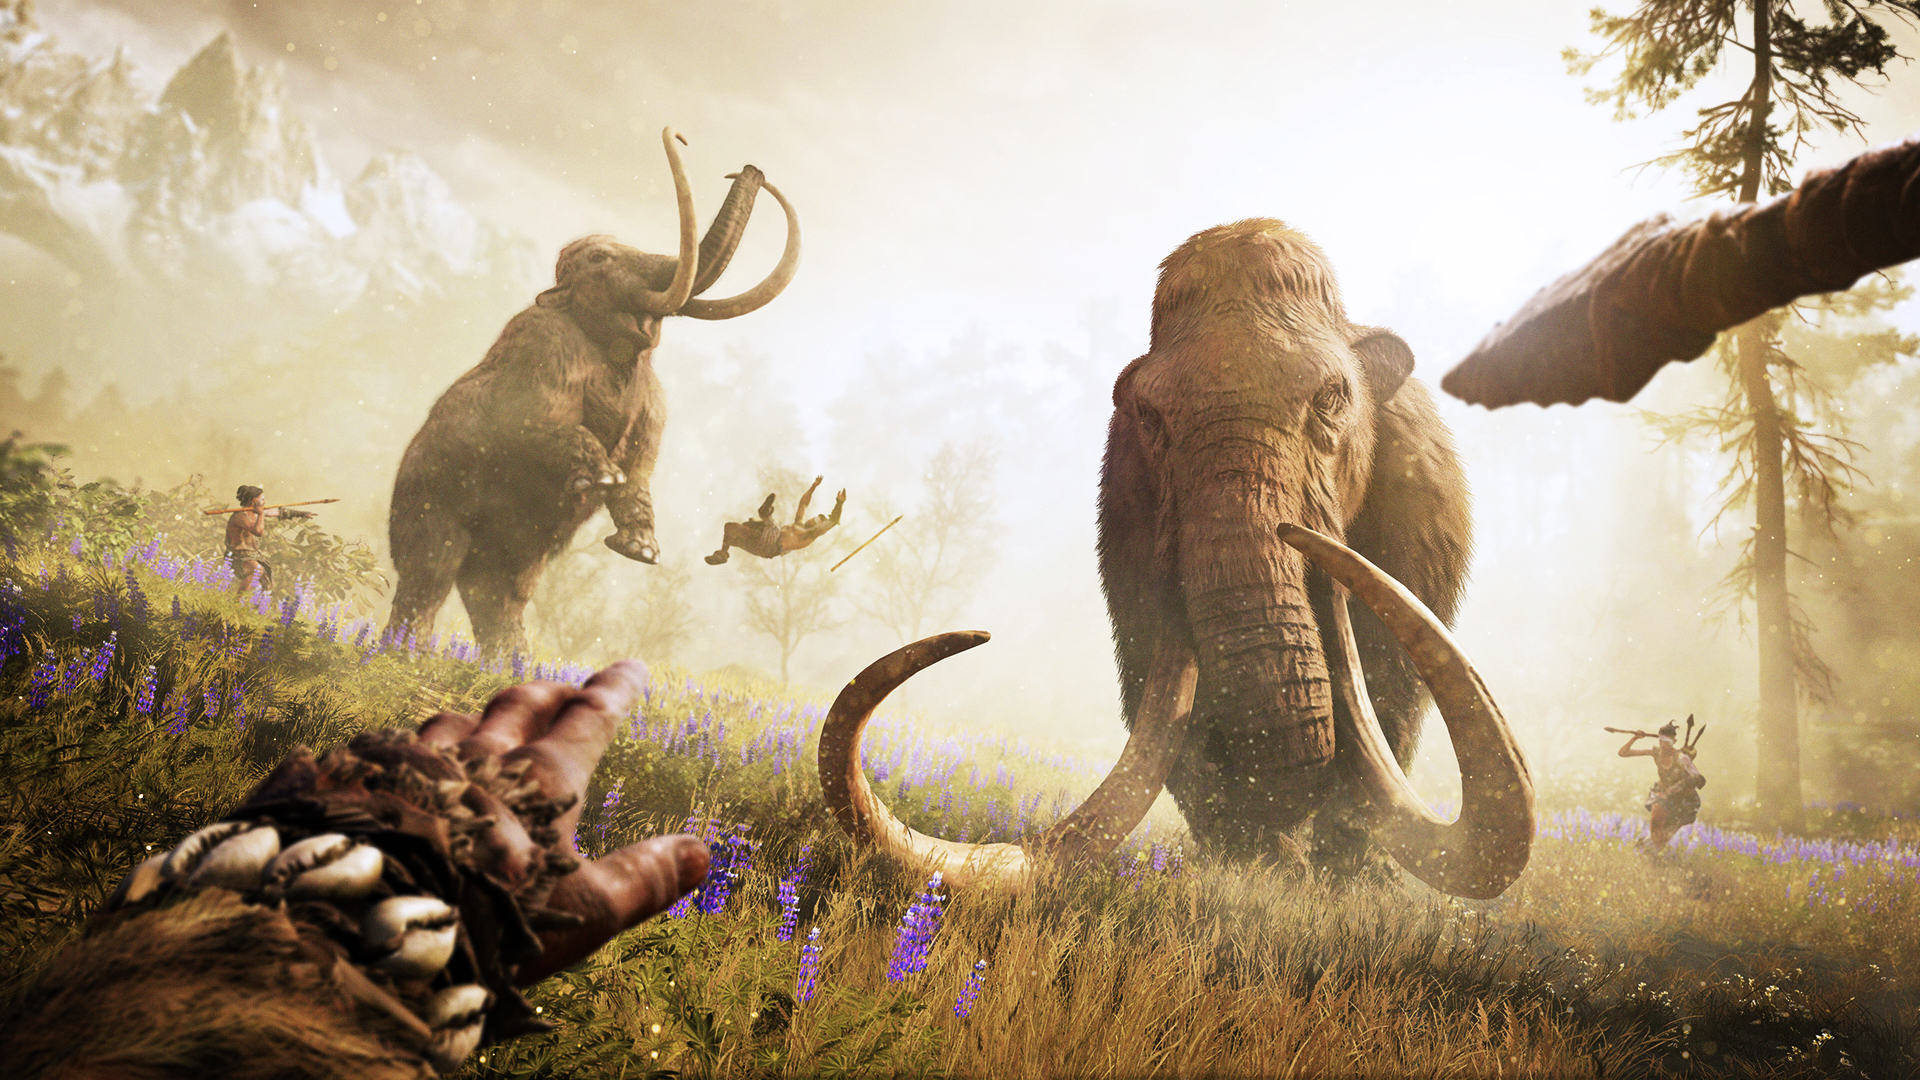 Ubisoft Announce Far Cry Primal With Reveal Trailer And Release Dates UNILAD FCP ANNOUNCE SCREEN 003 EMBARGO OCT 6 9AM PST 14440783873